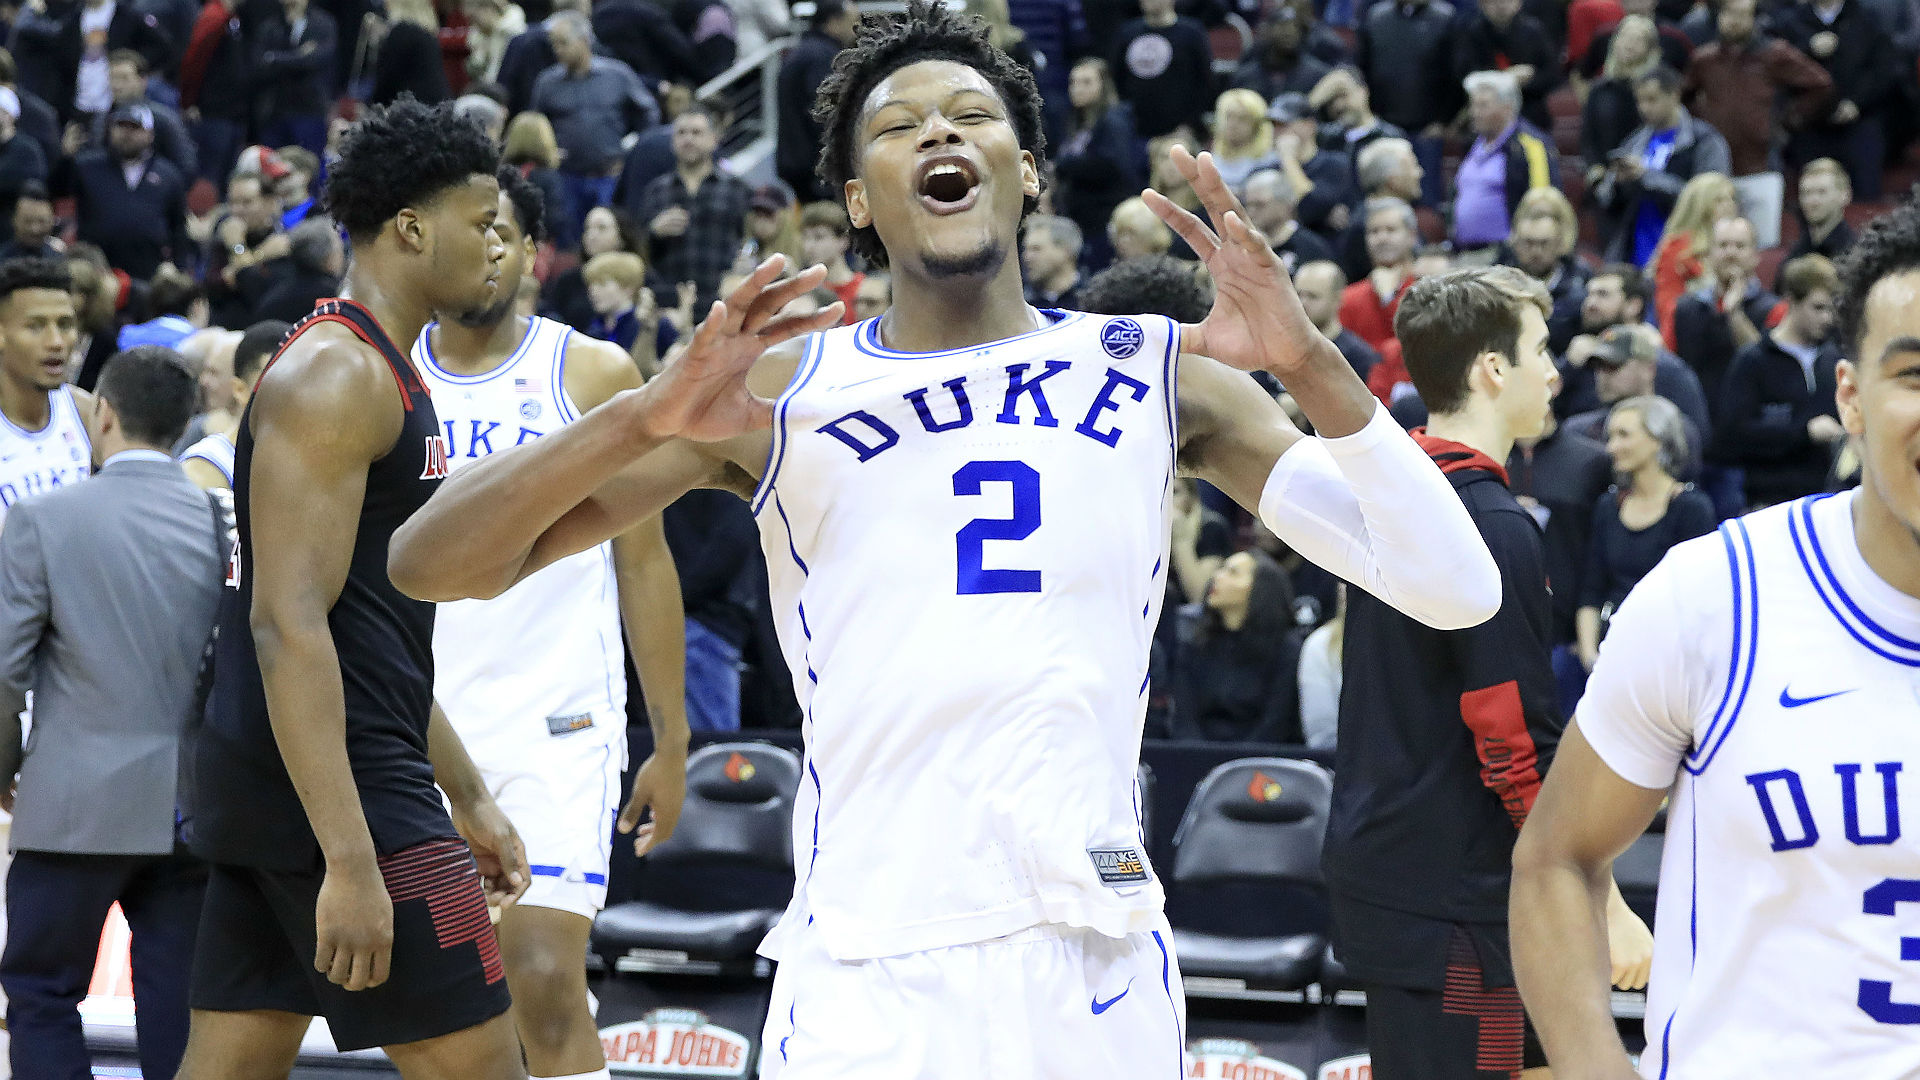 Duke stuns Louisville in biggest comeback of Coach K's career